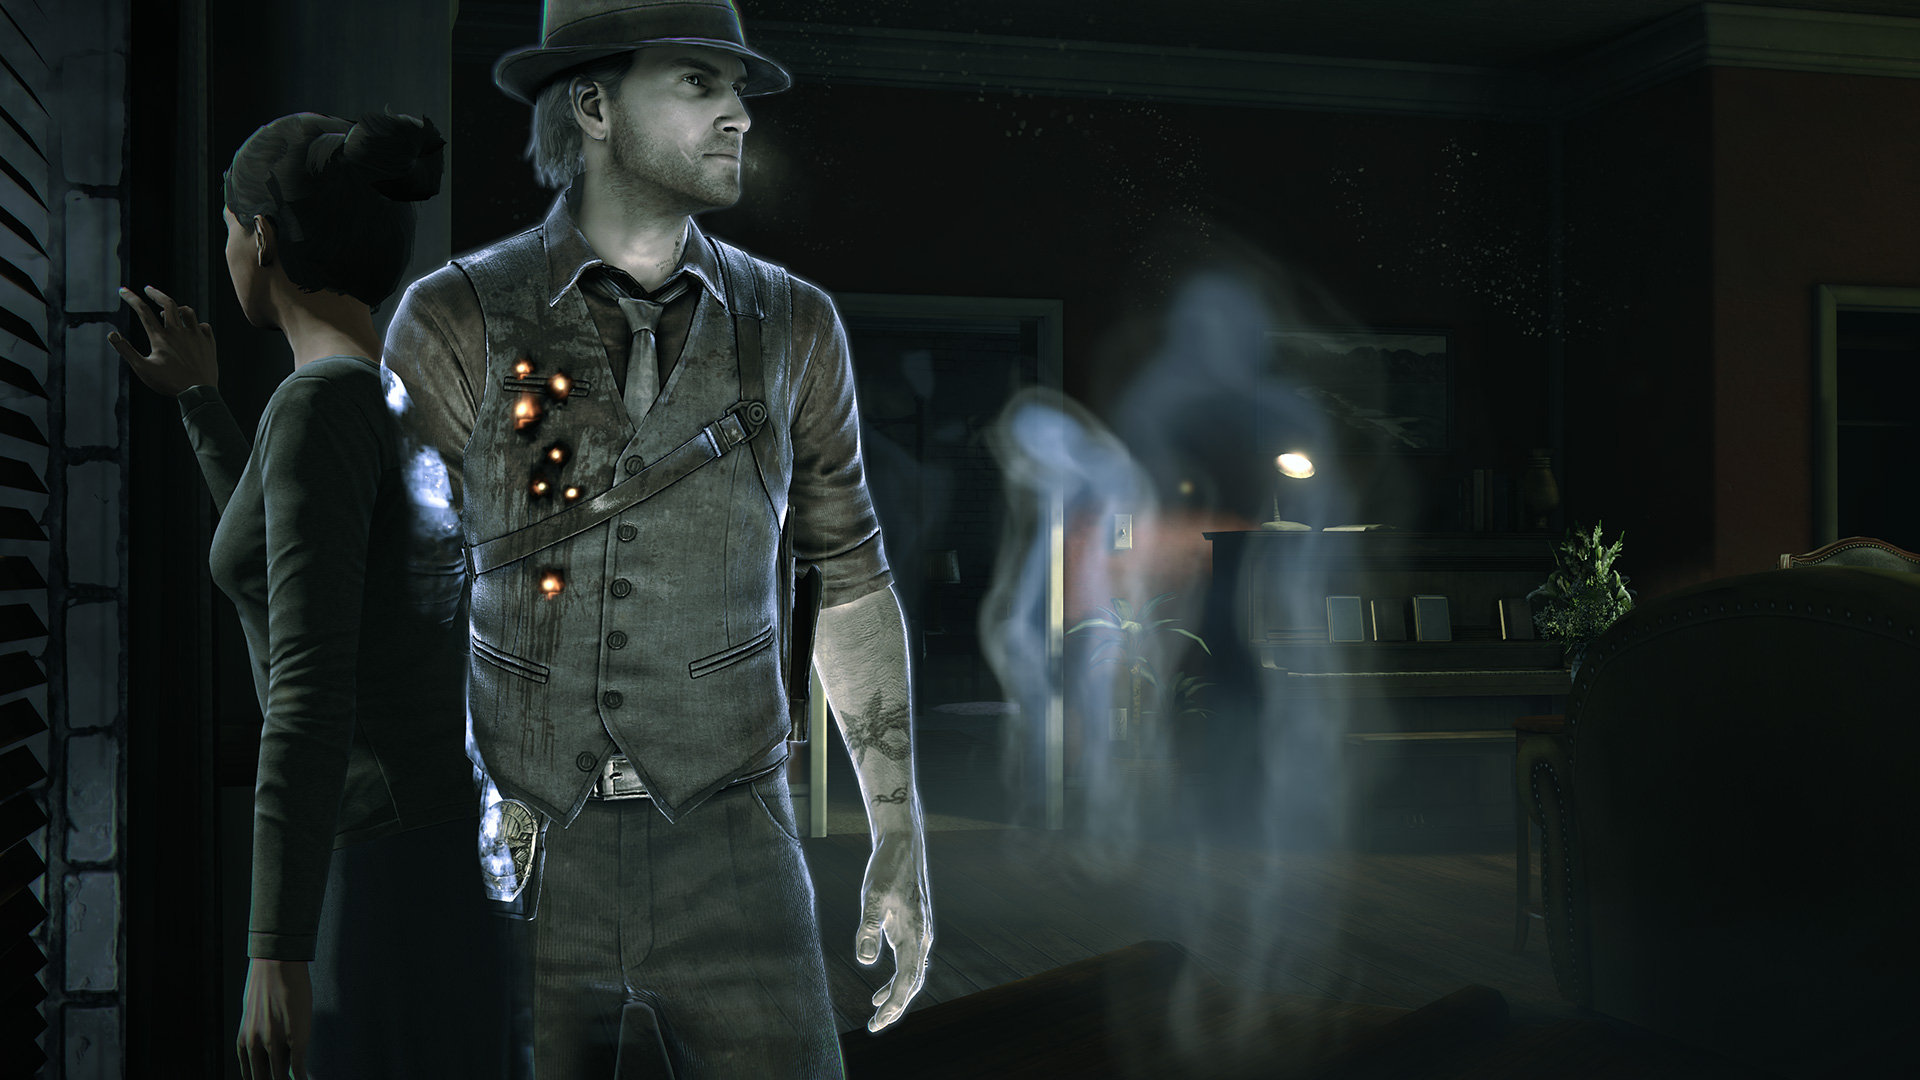 murdered-soul-suspect-shot-01-us-02may14